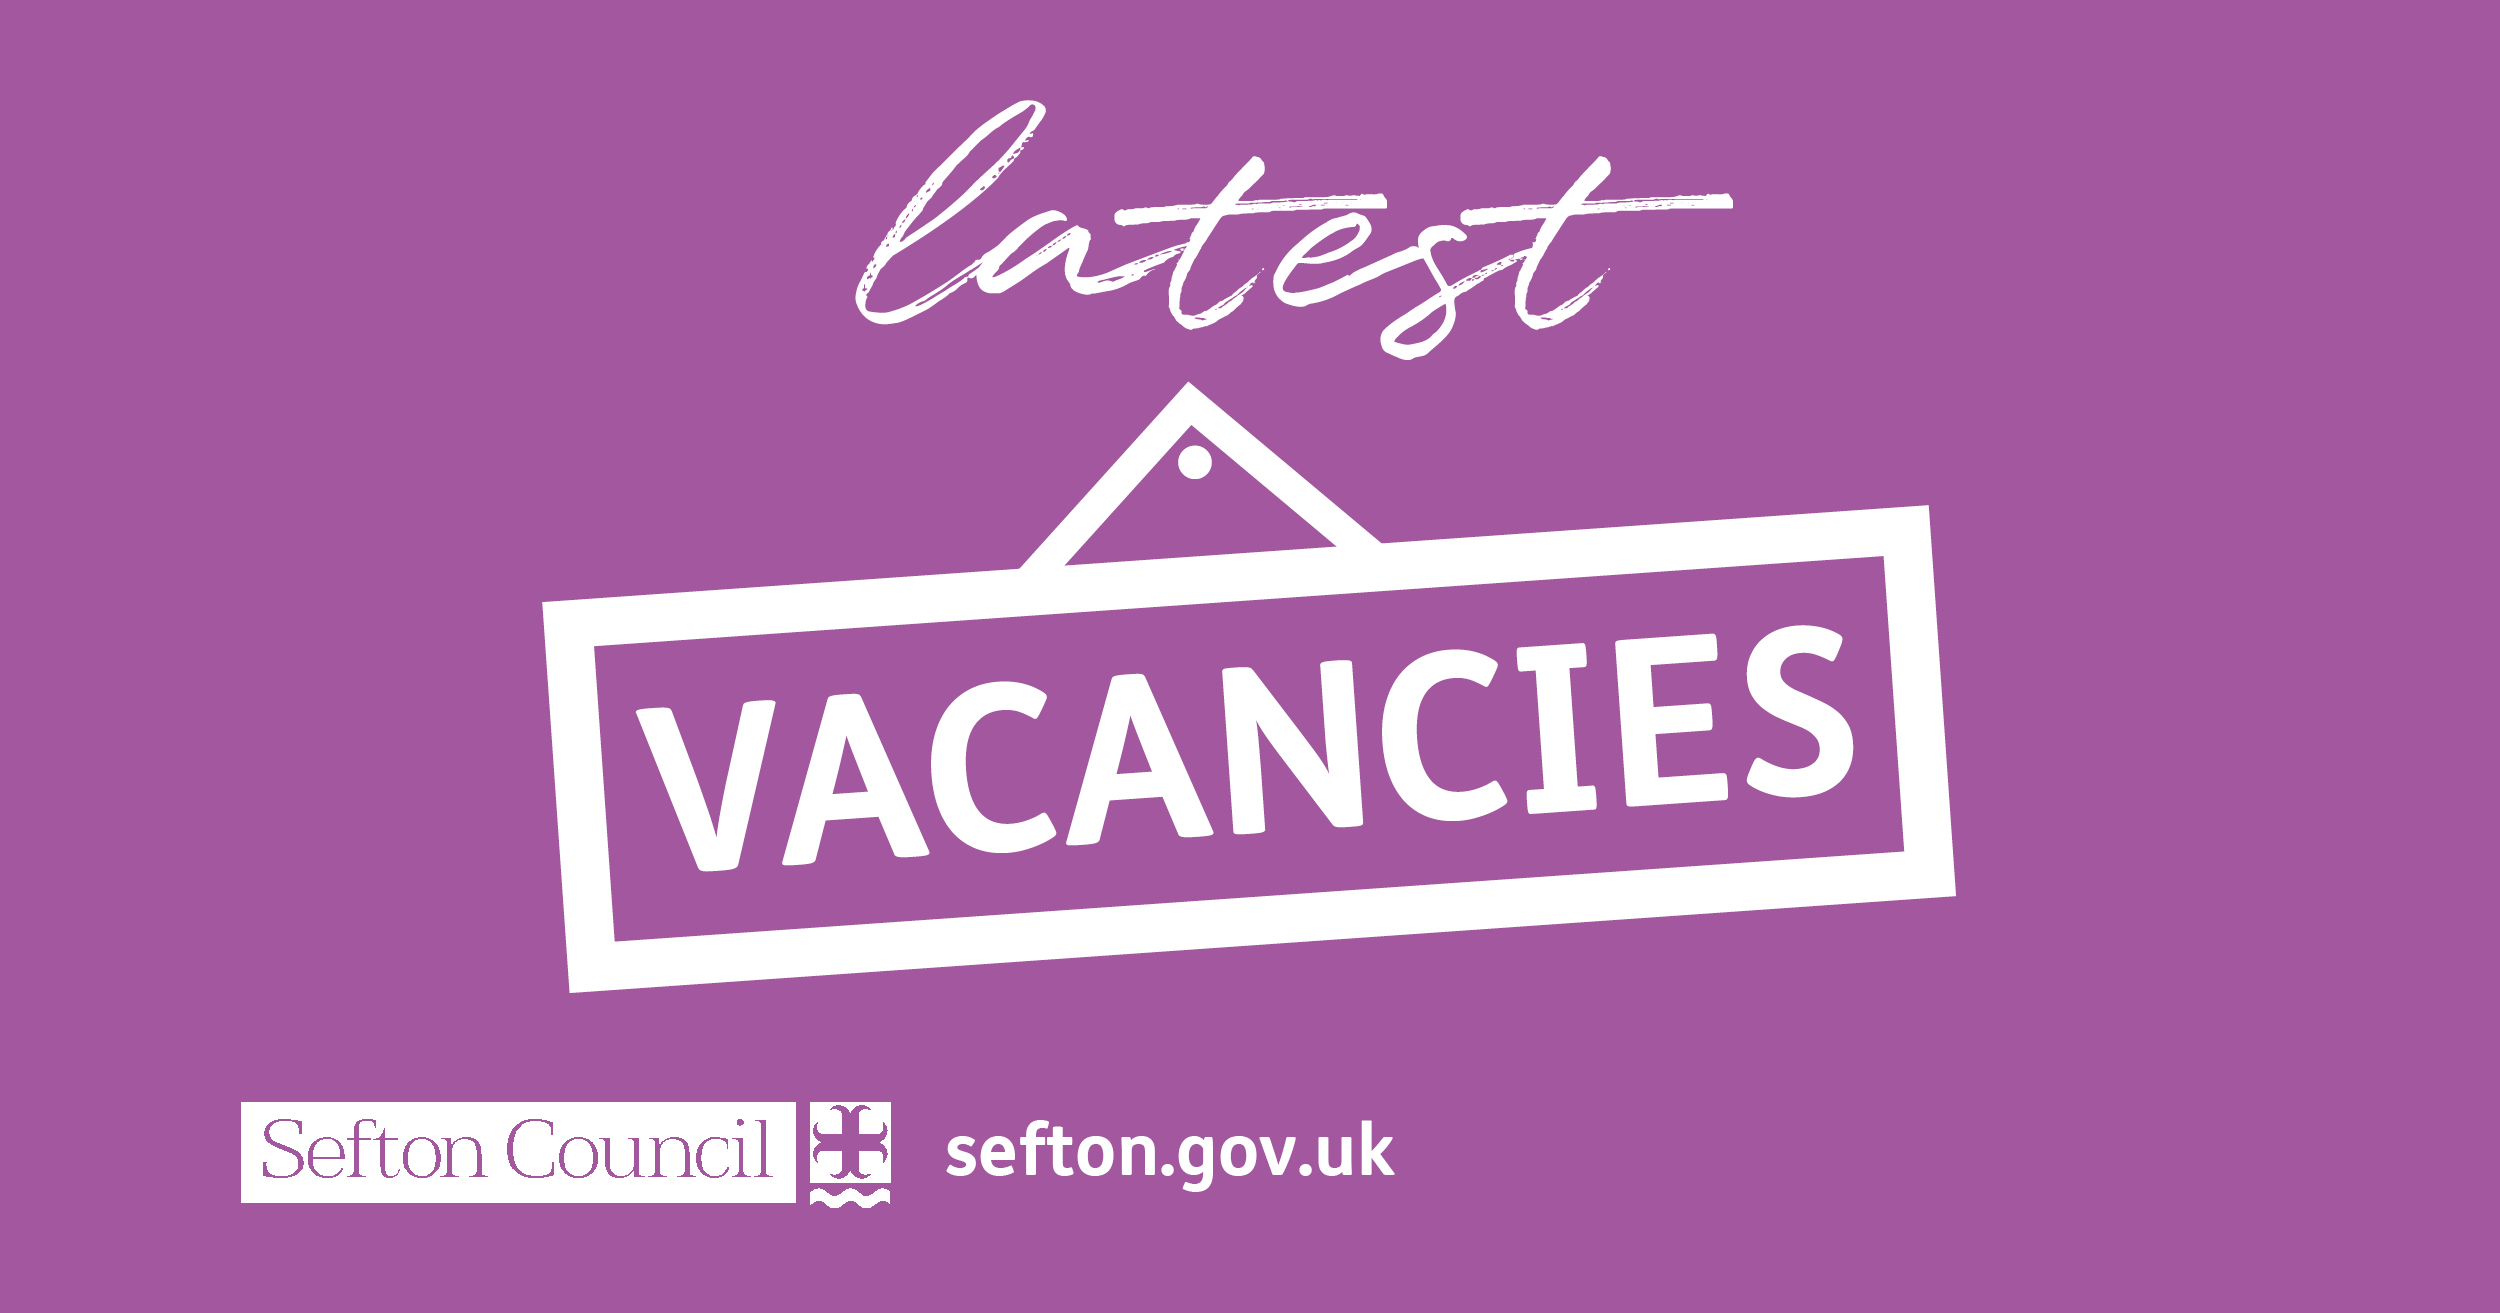 Sefton Latest Vacancies communications.jpg